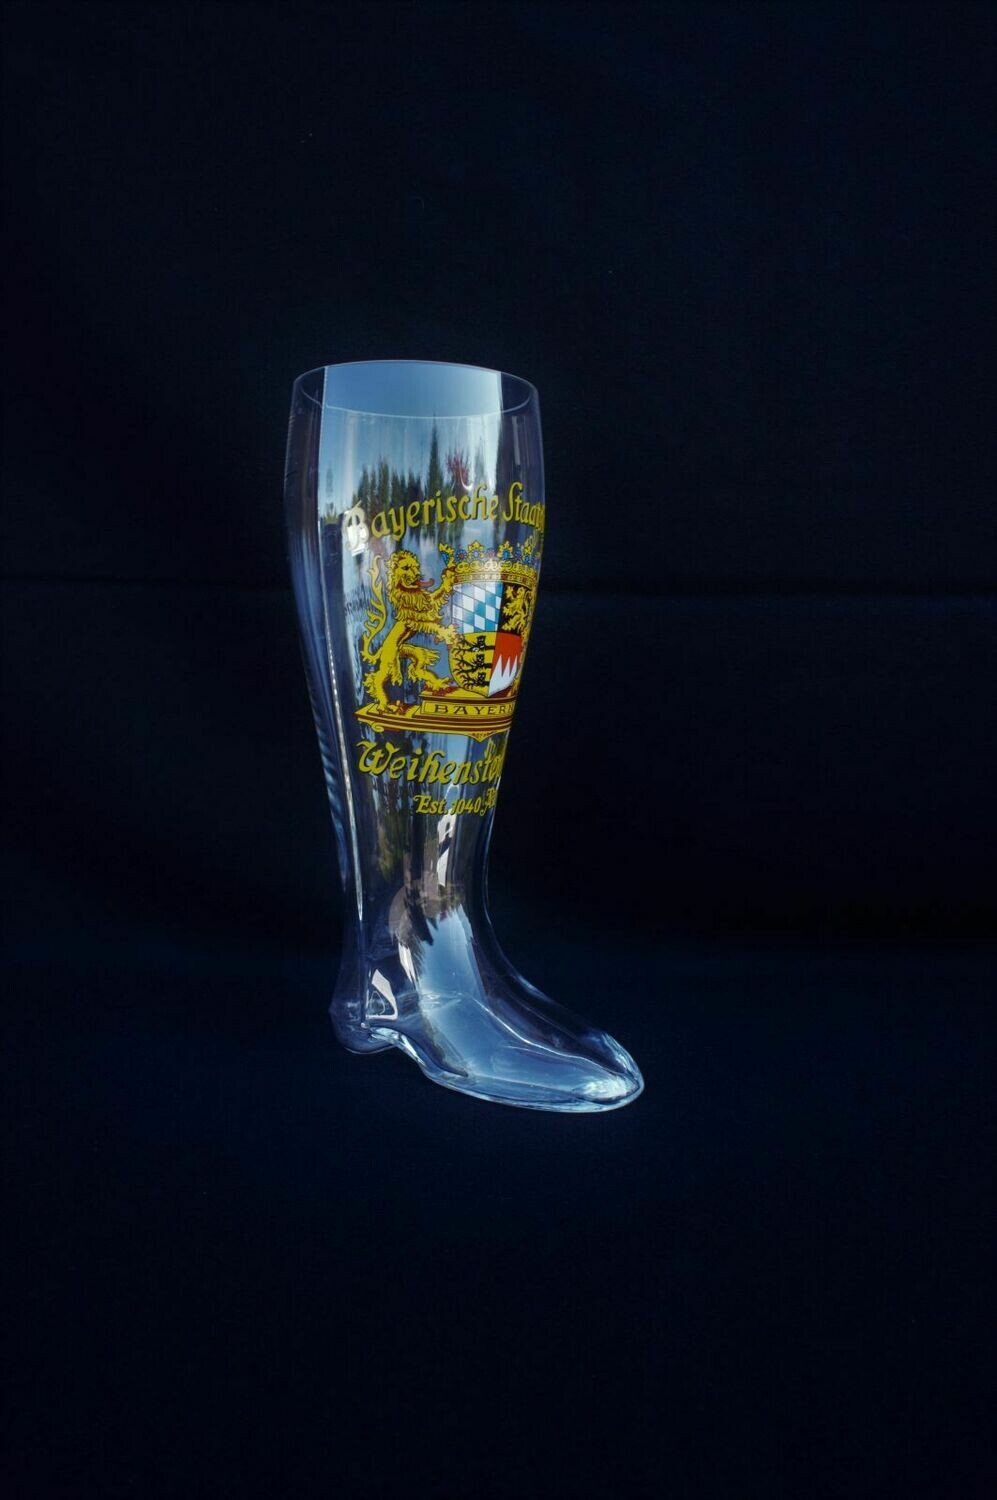 Weihenstephan - Glass boot - 2 liter